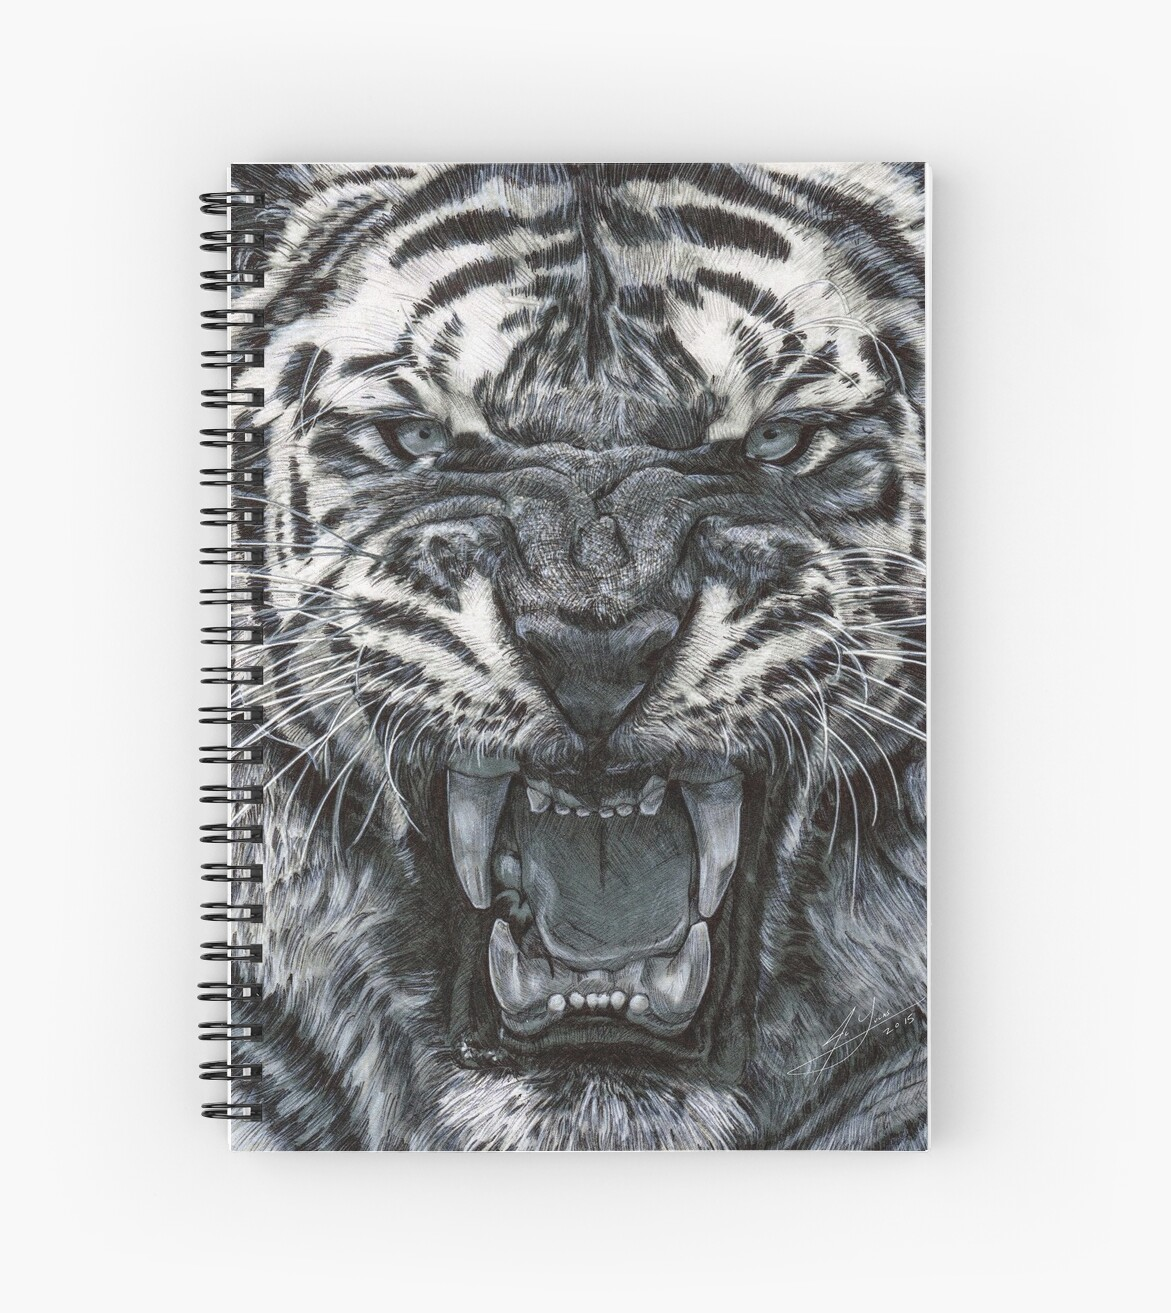 Tiger growl graphite pencil drawing